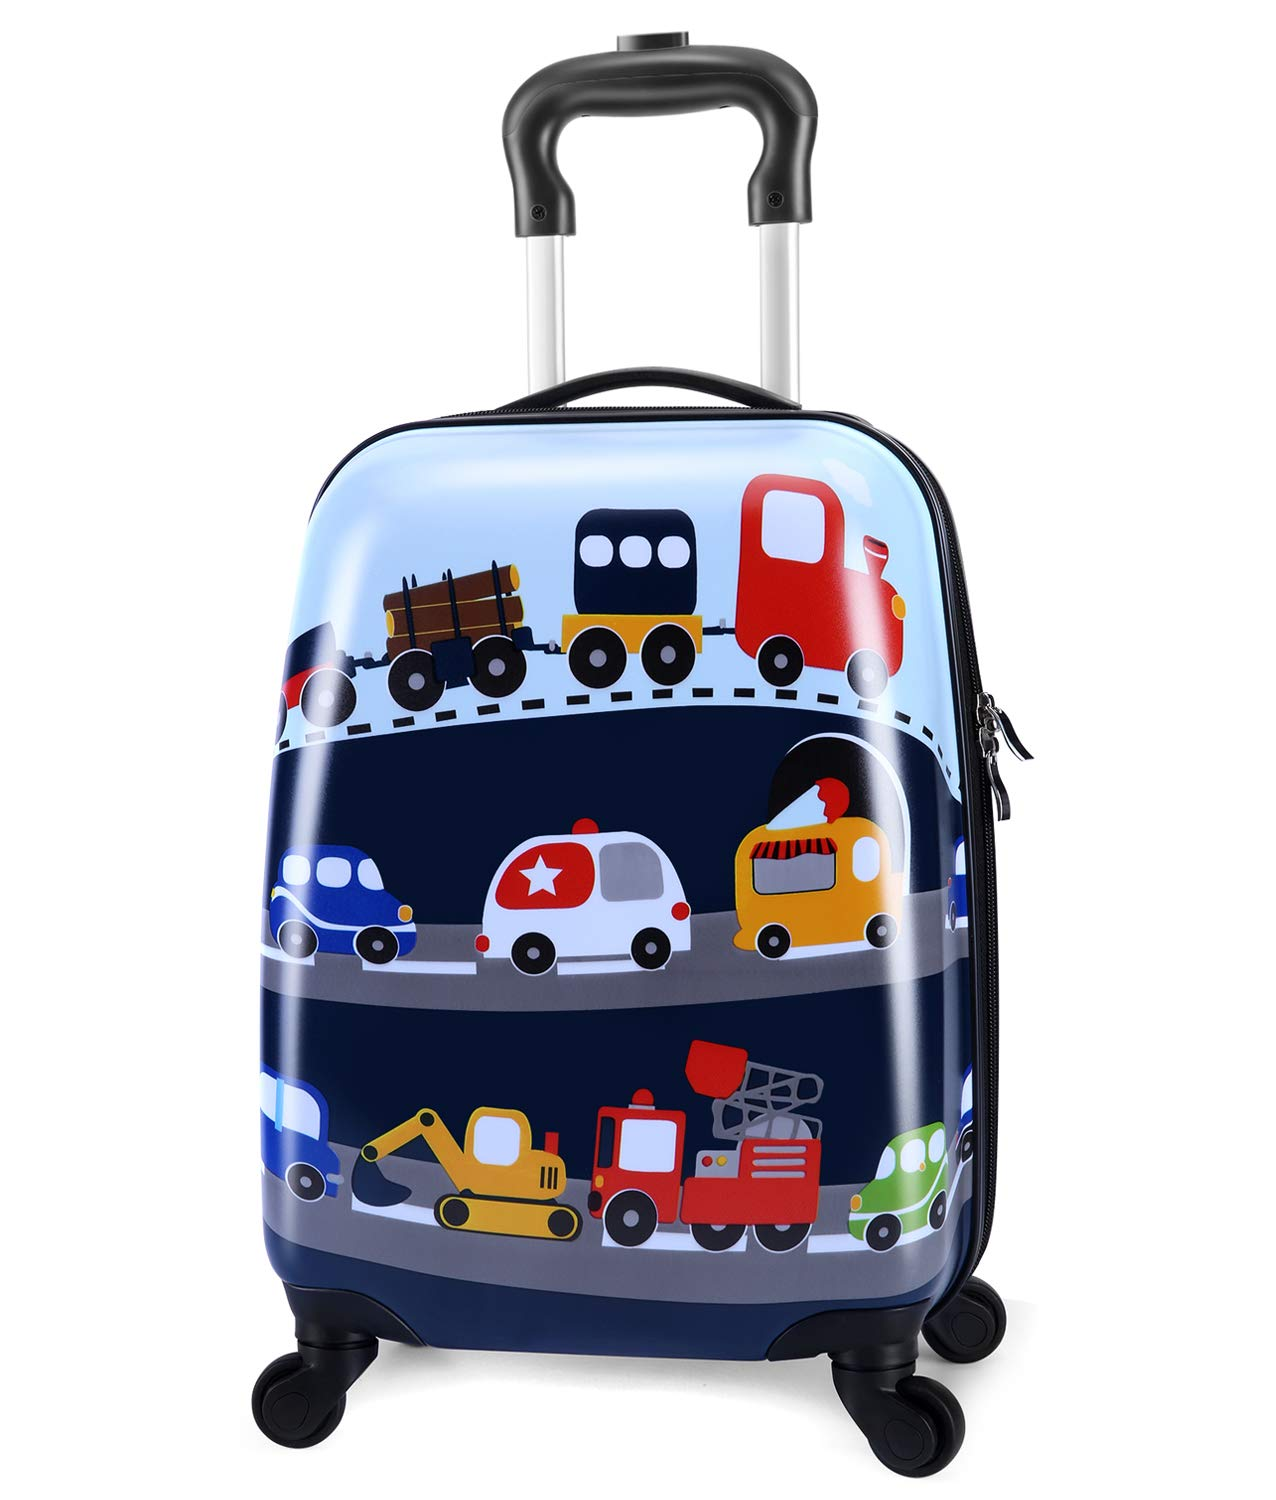 Lttxin cute kids suitcase pull along girls travelling with 4 wheel hard shell 16 inch owl LK-luggage-kids-001